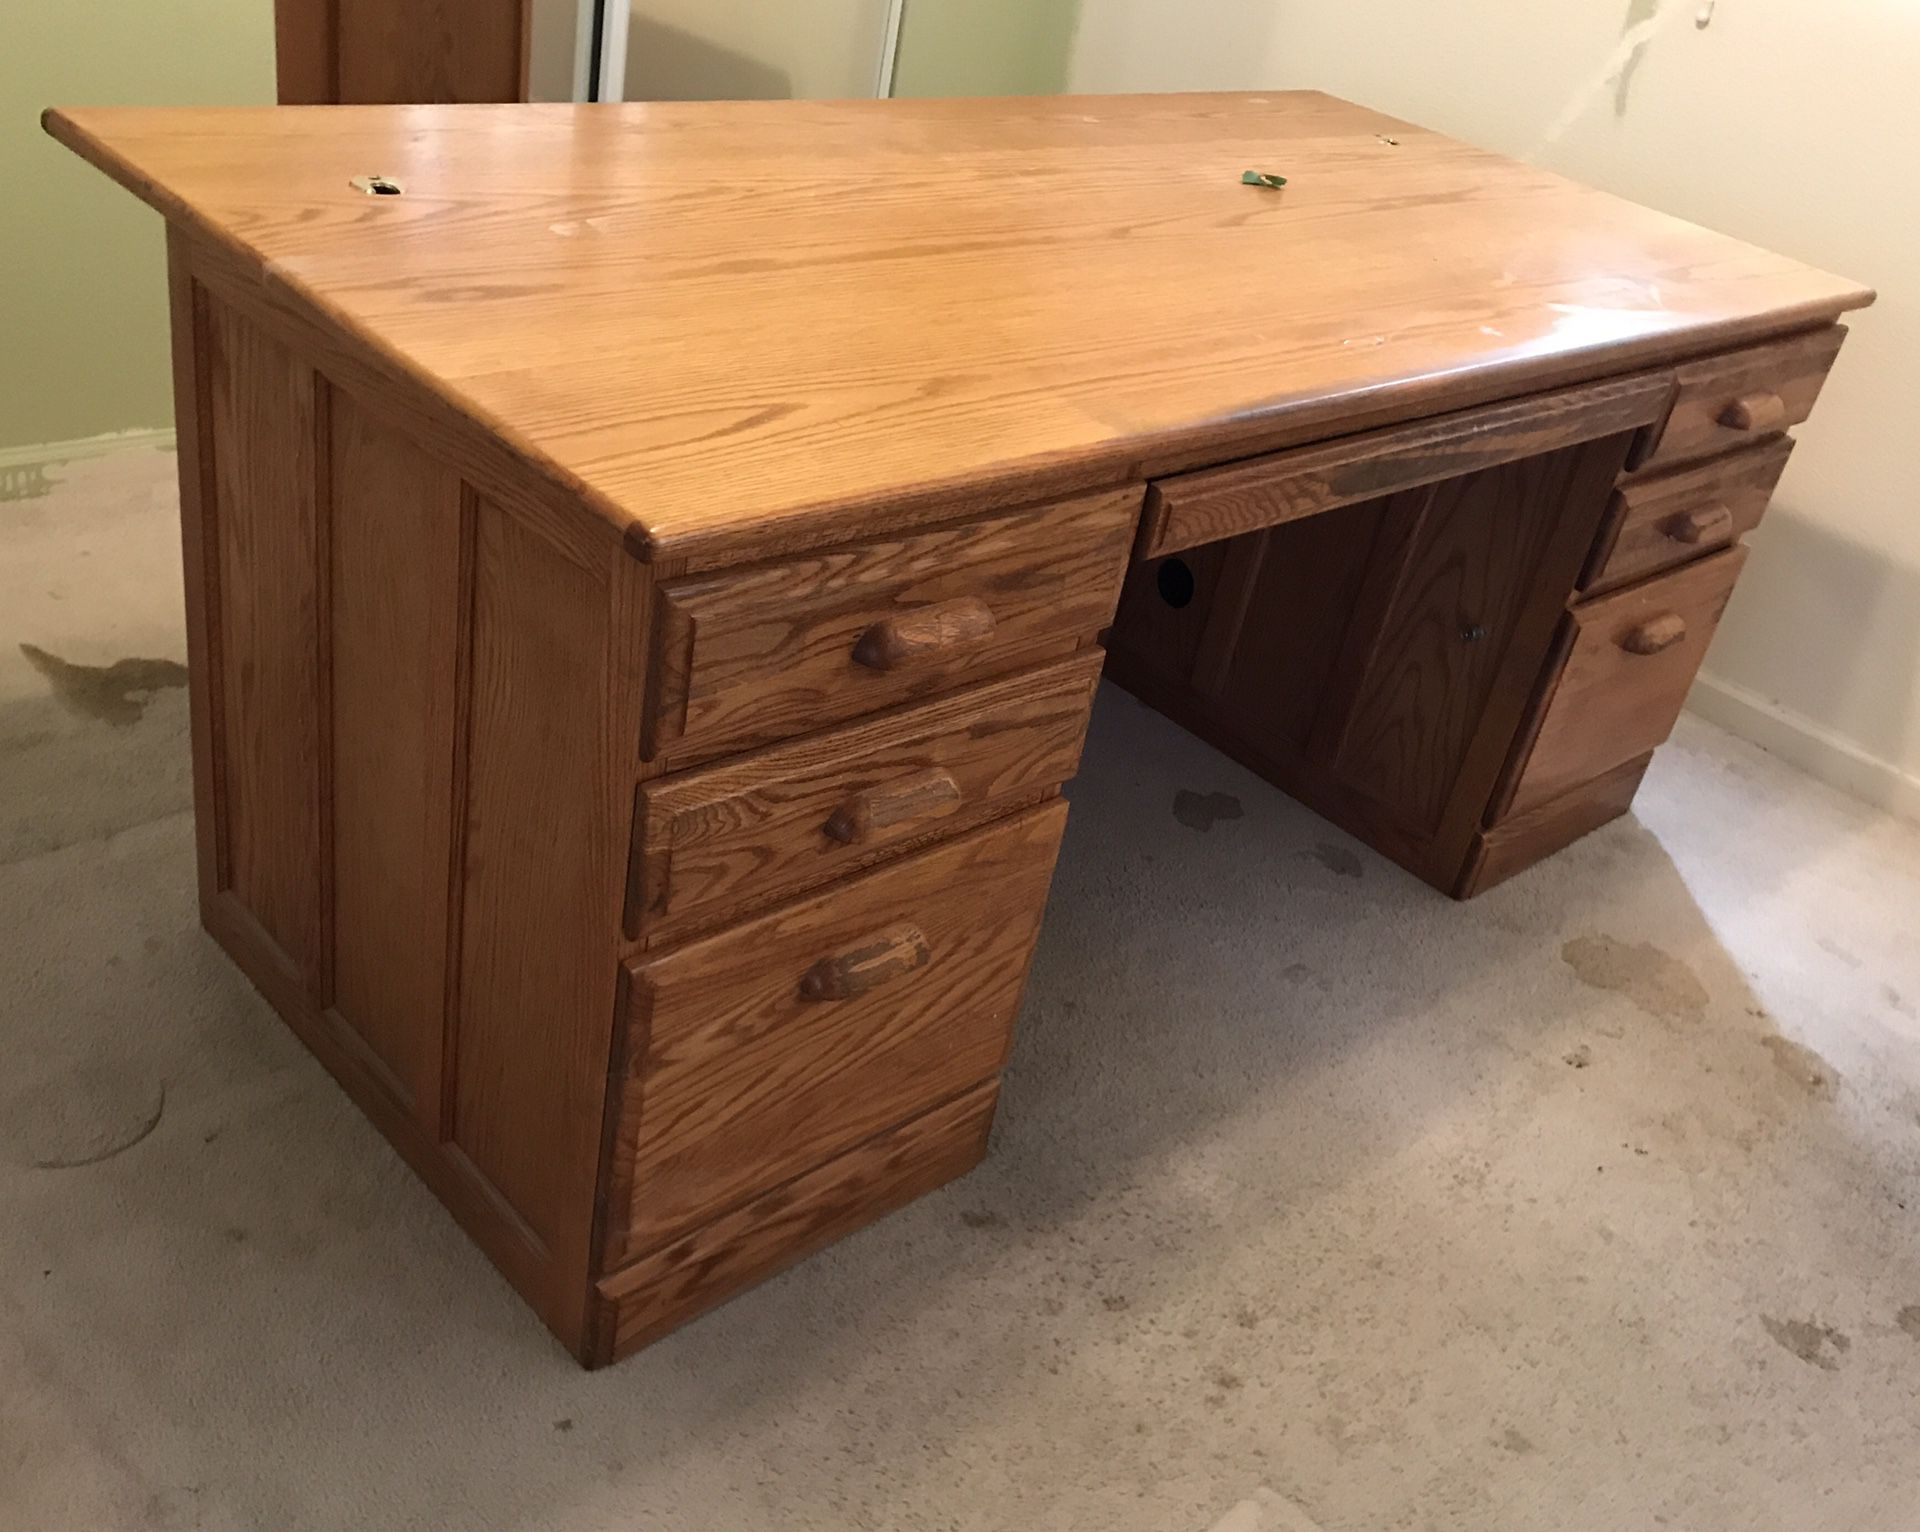 Executive desk with built in file drawers